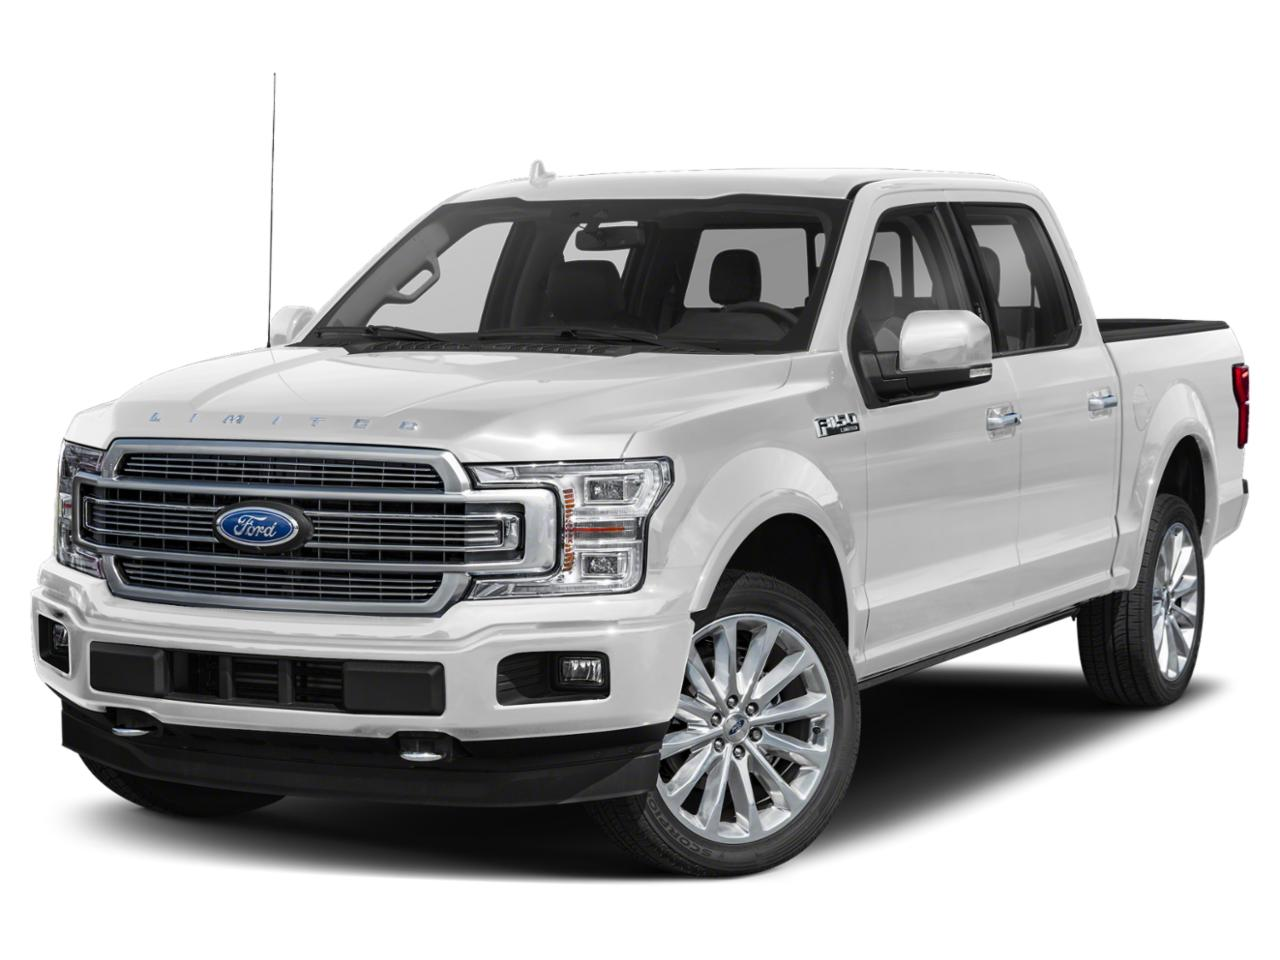 White Metallic 2020 Ford F-150 LIMITED Crew Cab Pickup Winston-Salem NC